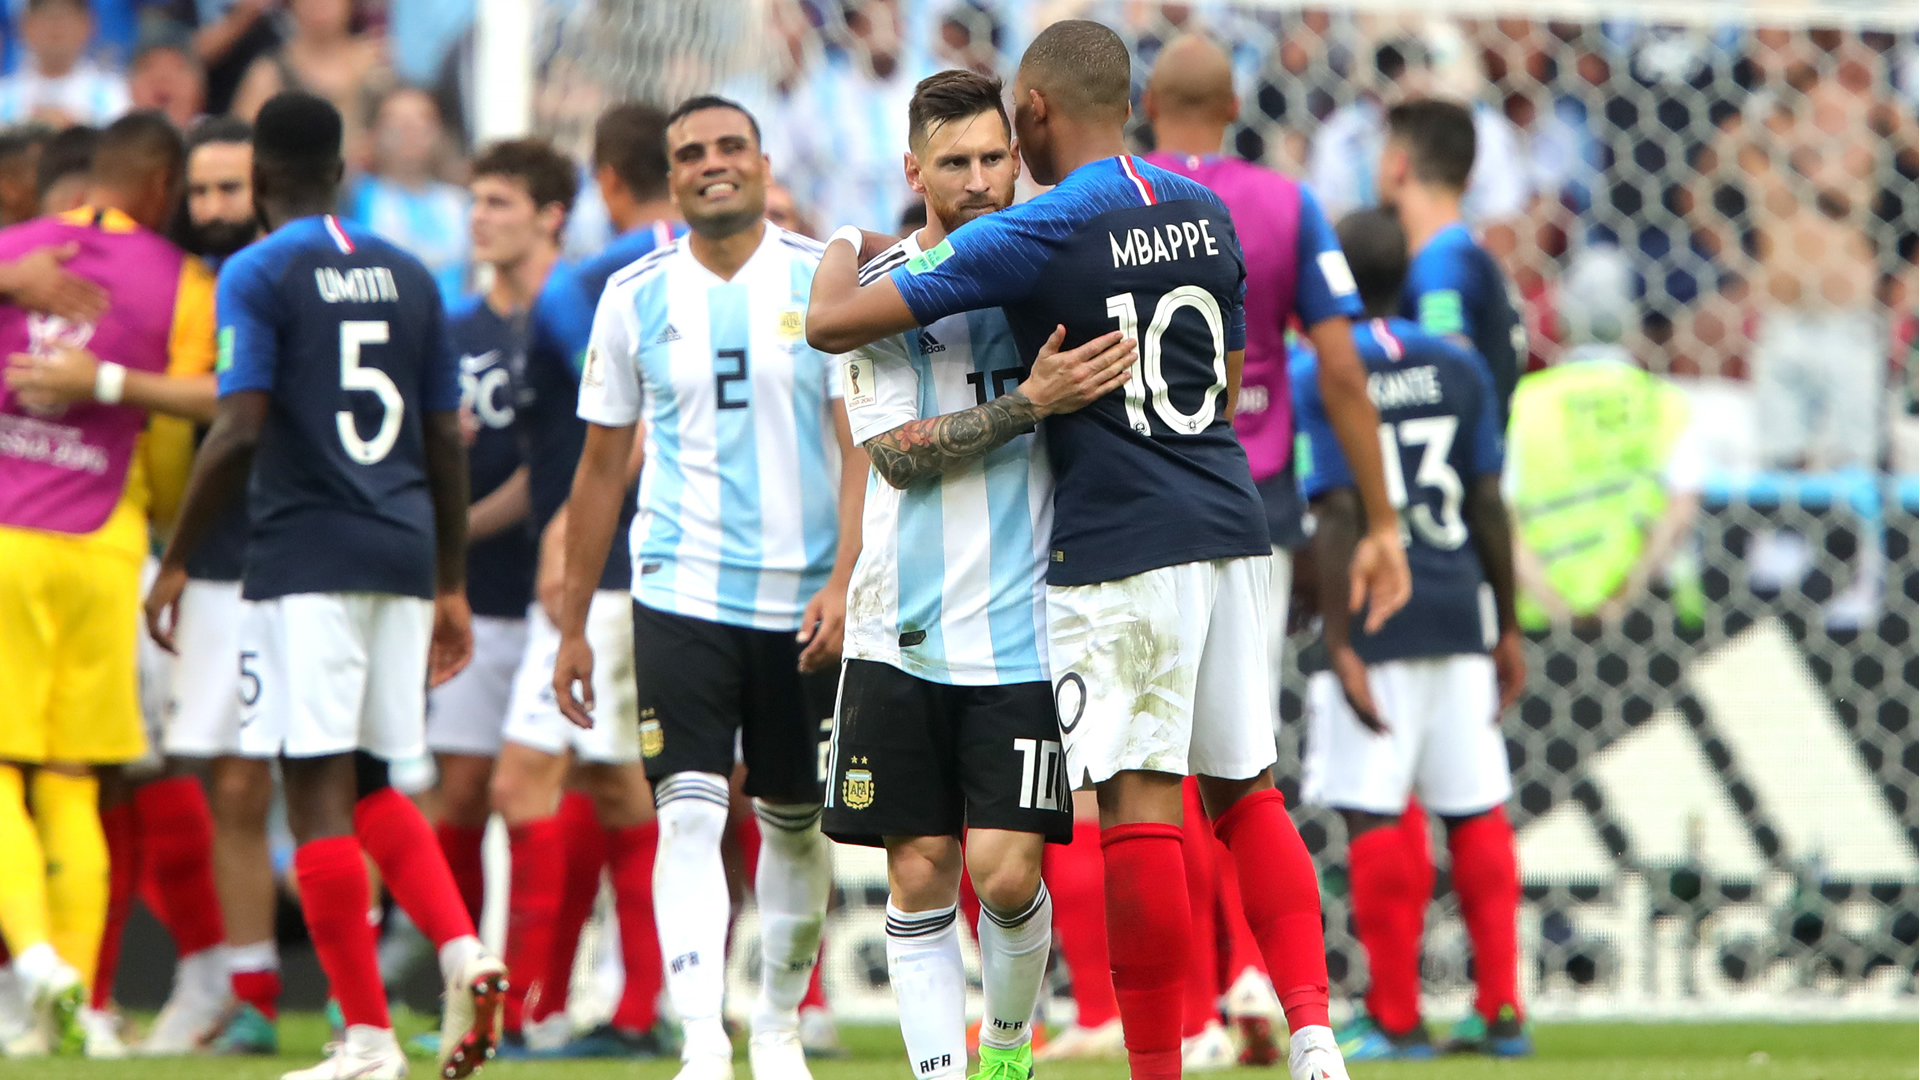 Lionel Messi Kylian Mbappe Argentina France World Cup 2018